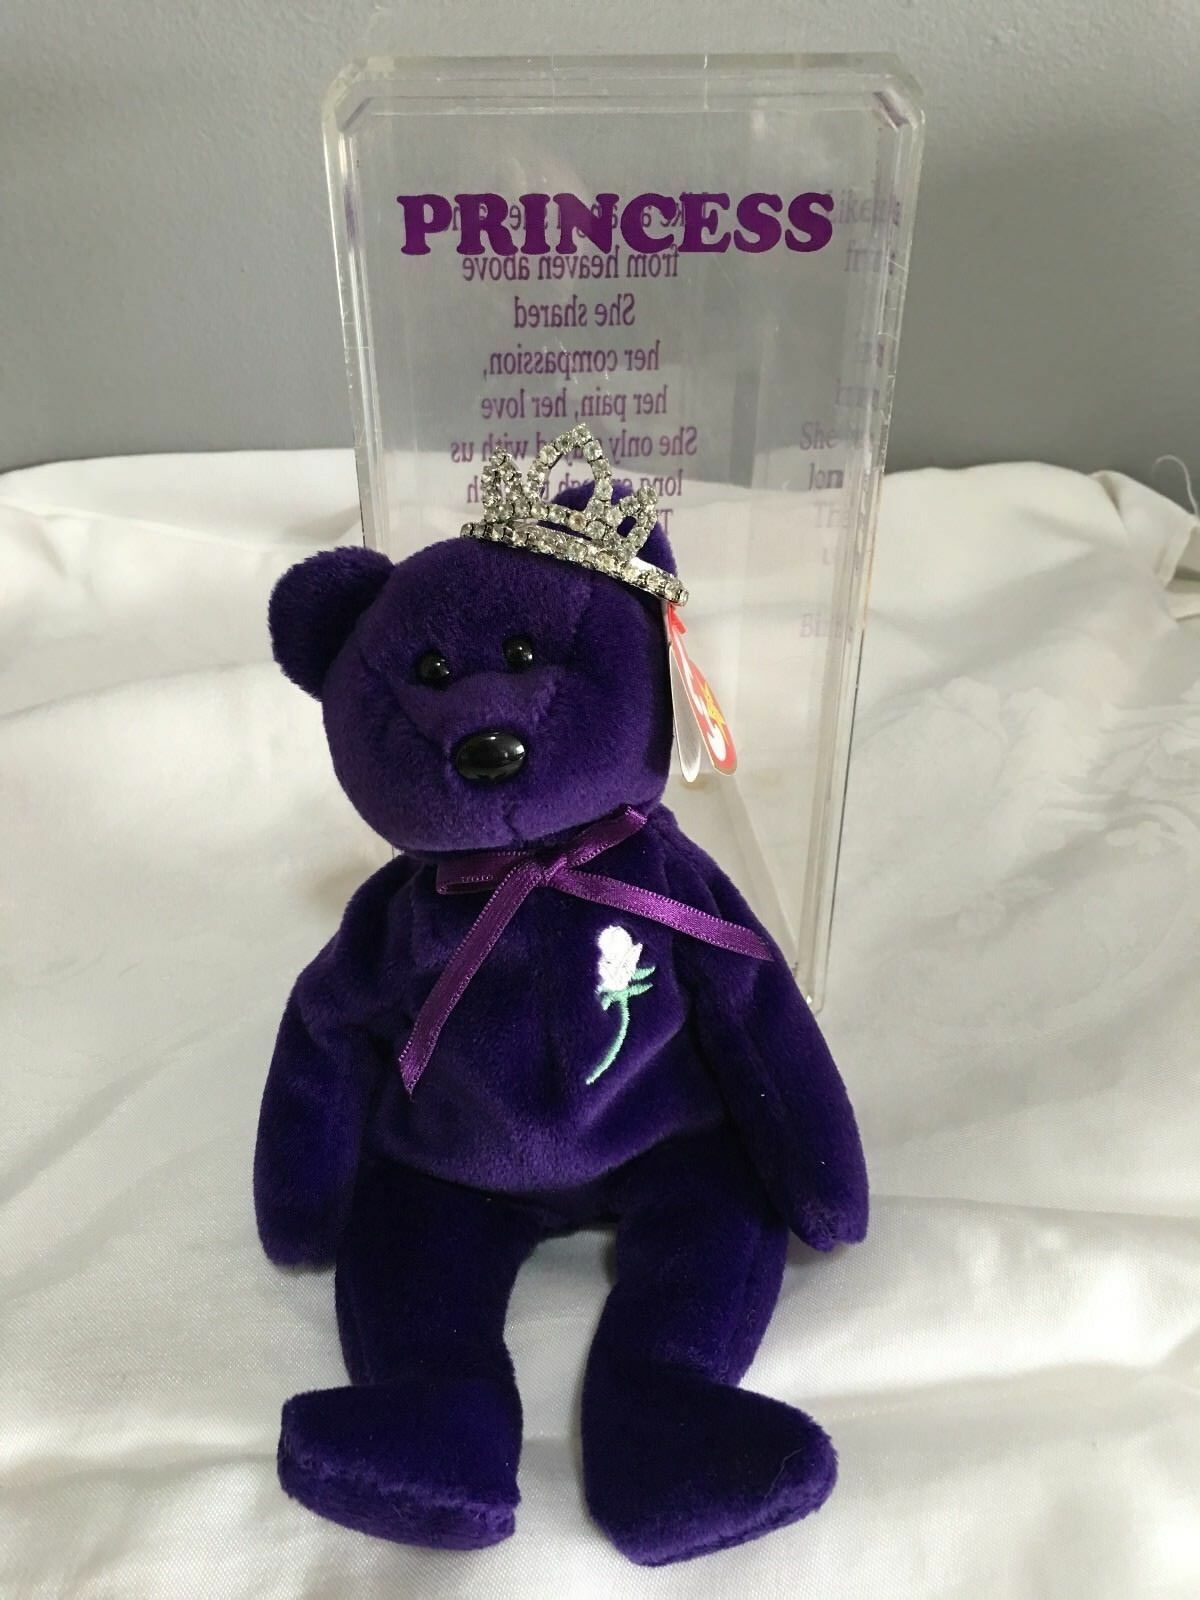 1997 Ty Beanie Baby Princess Bear 1st Edition PVC No Space With Tiara MINT